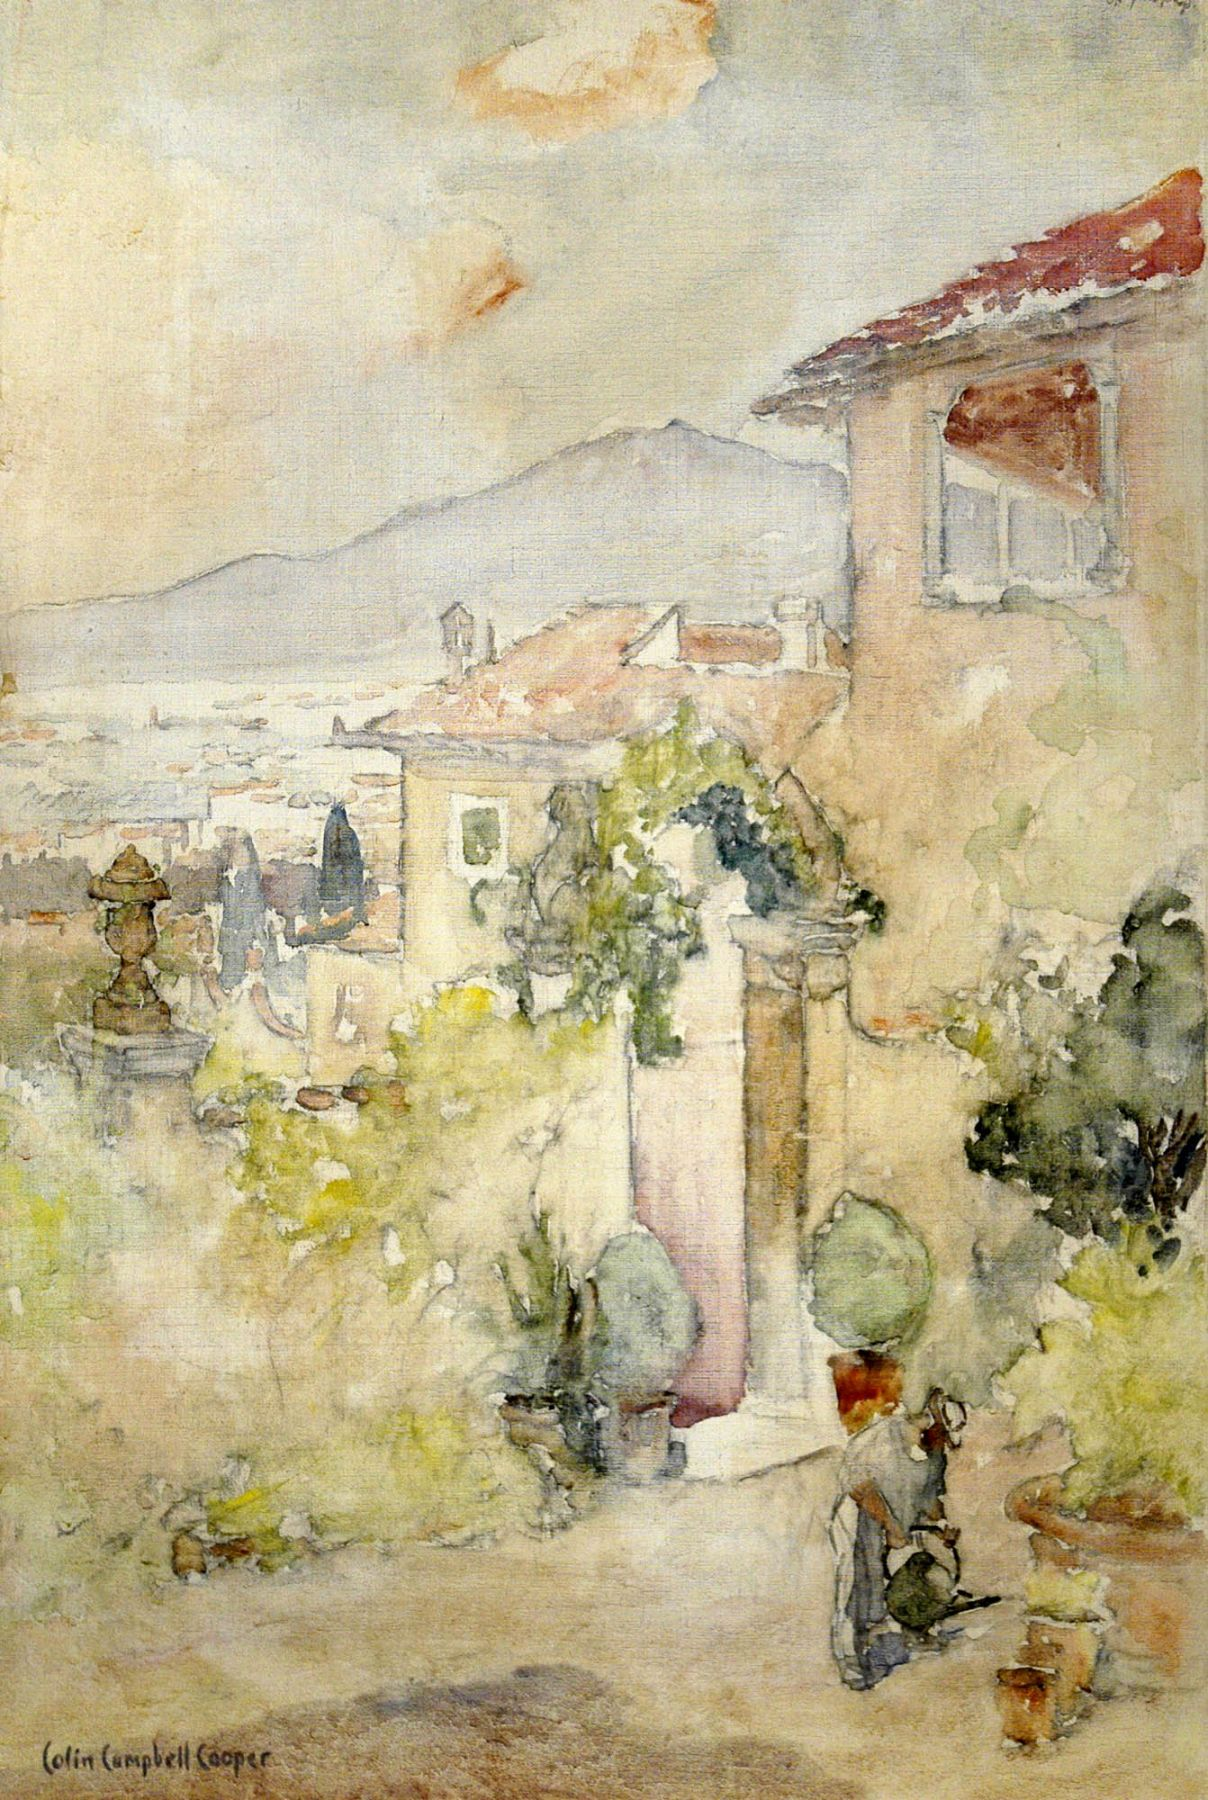 COLIN CAMPBELL COOPER (1856-1937), From Taoromina to Mt Aetna, c. 1910